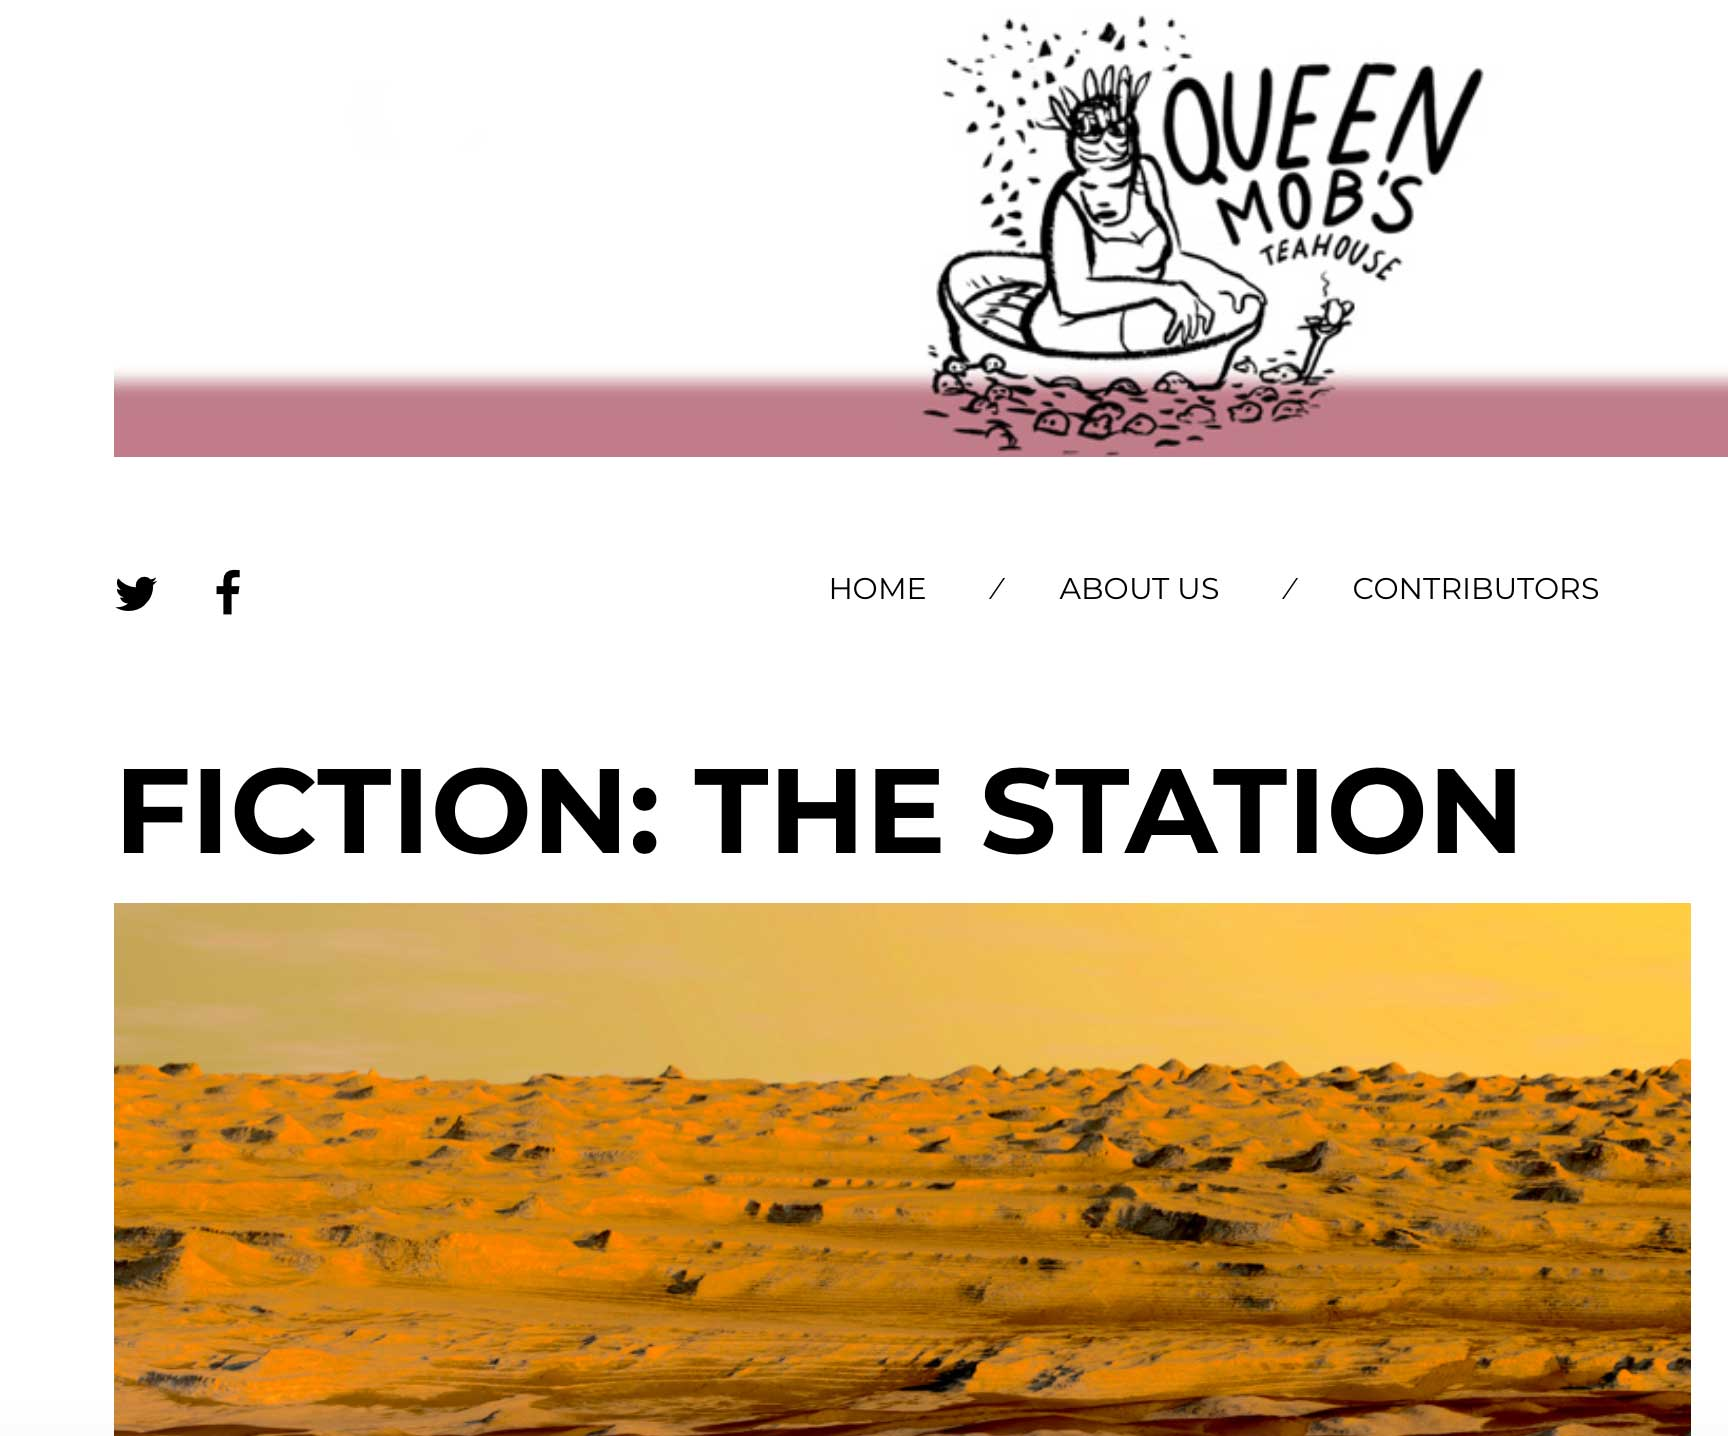 Station_fiction